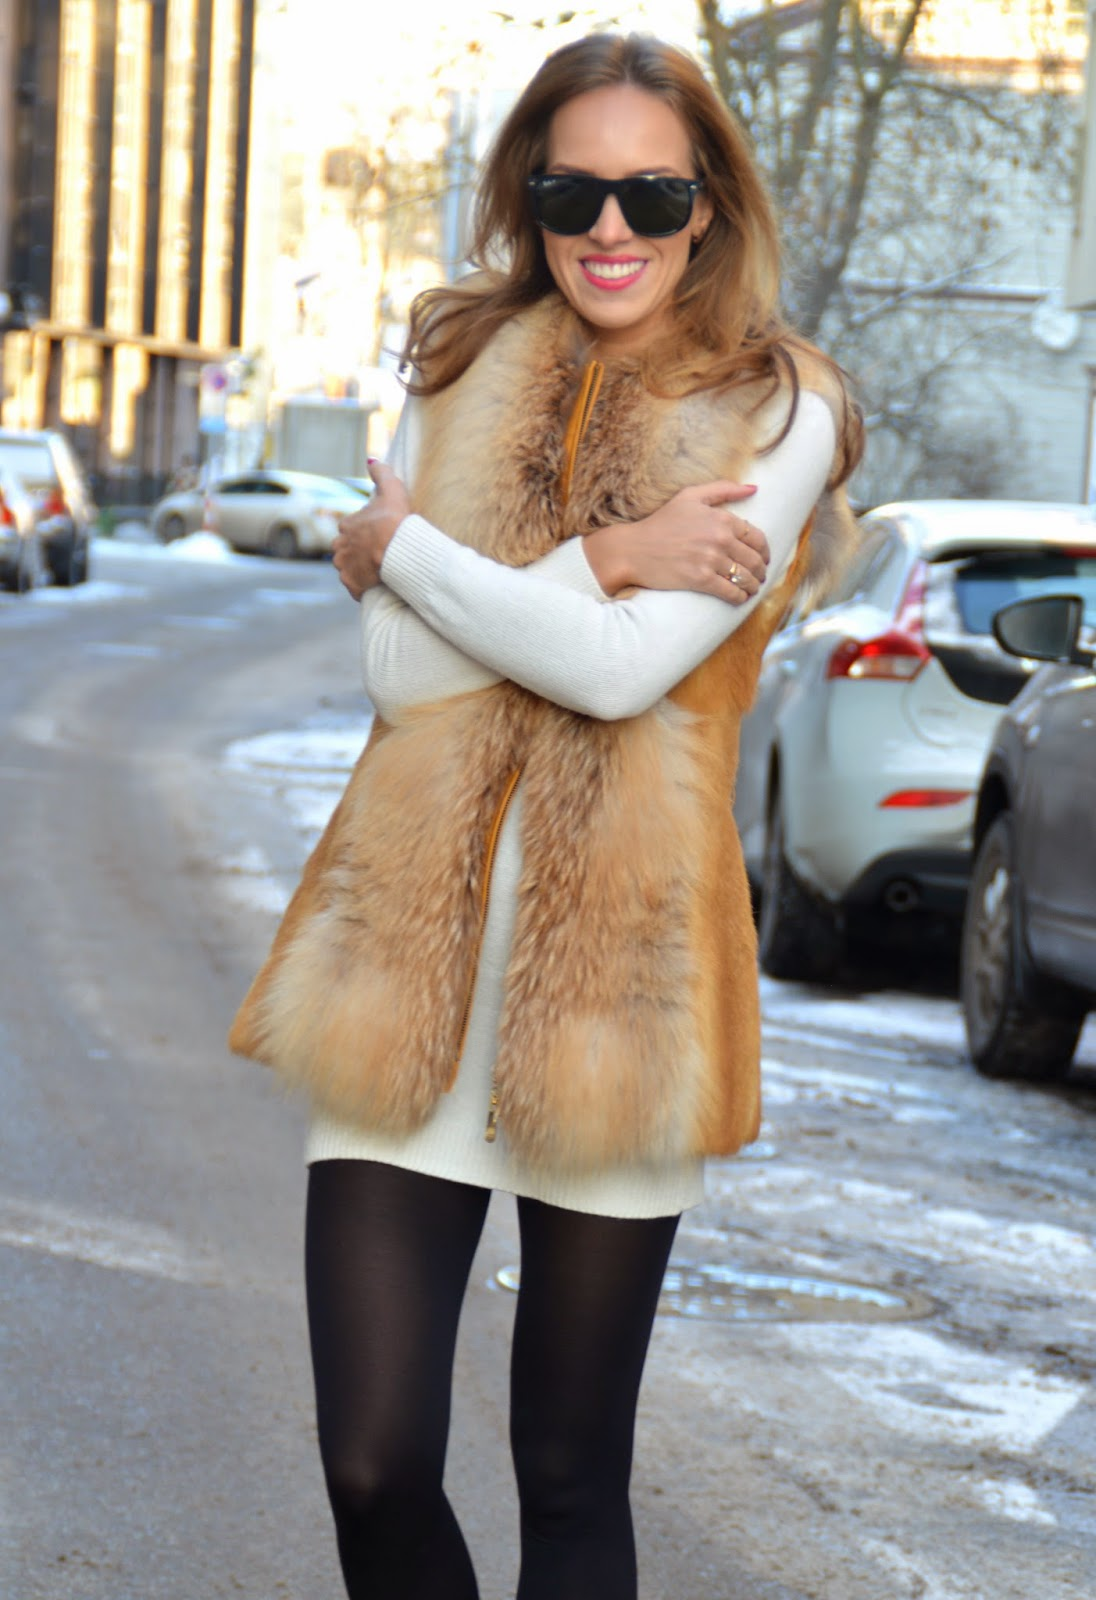 ray-ban-sunglasses-fur-vest-white-knit